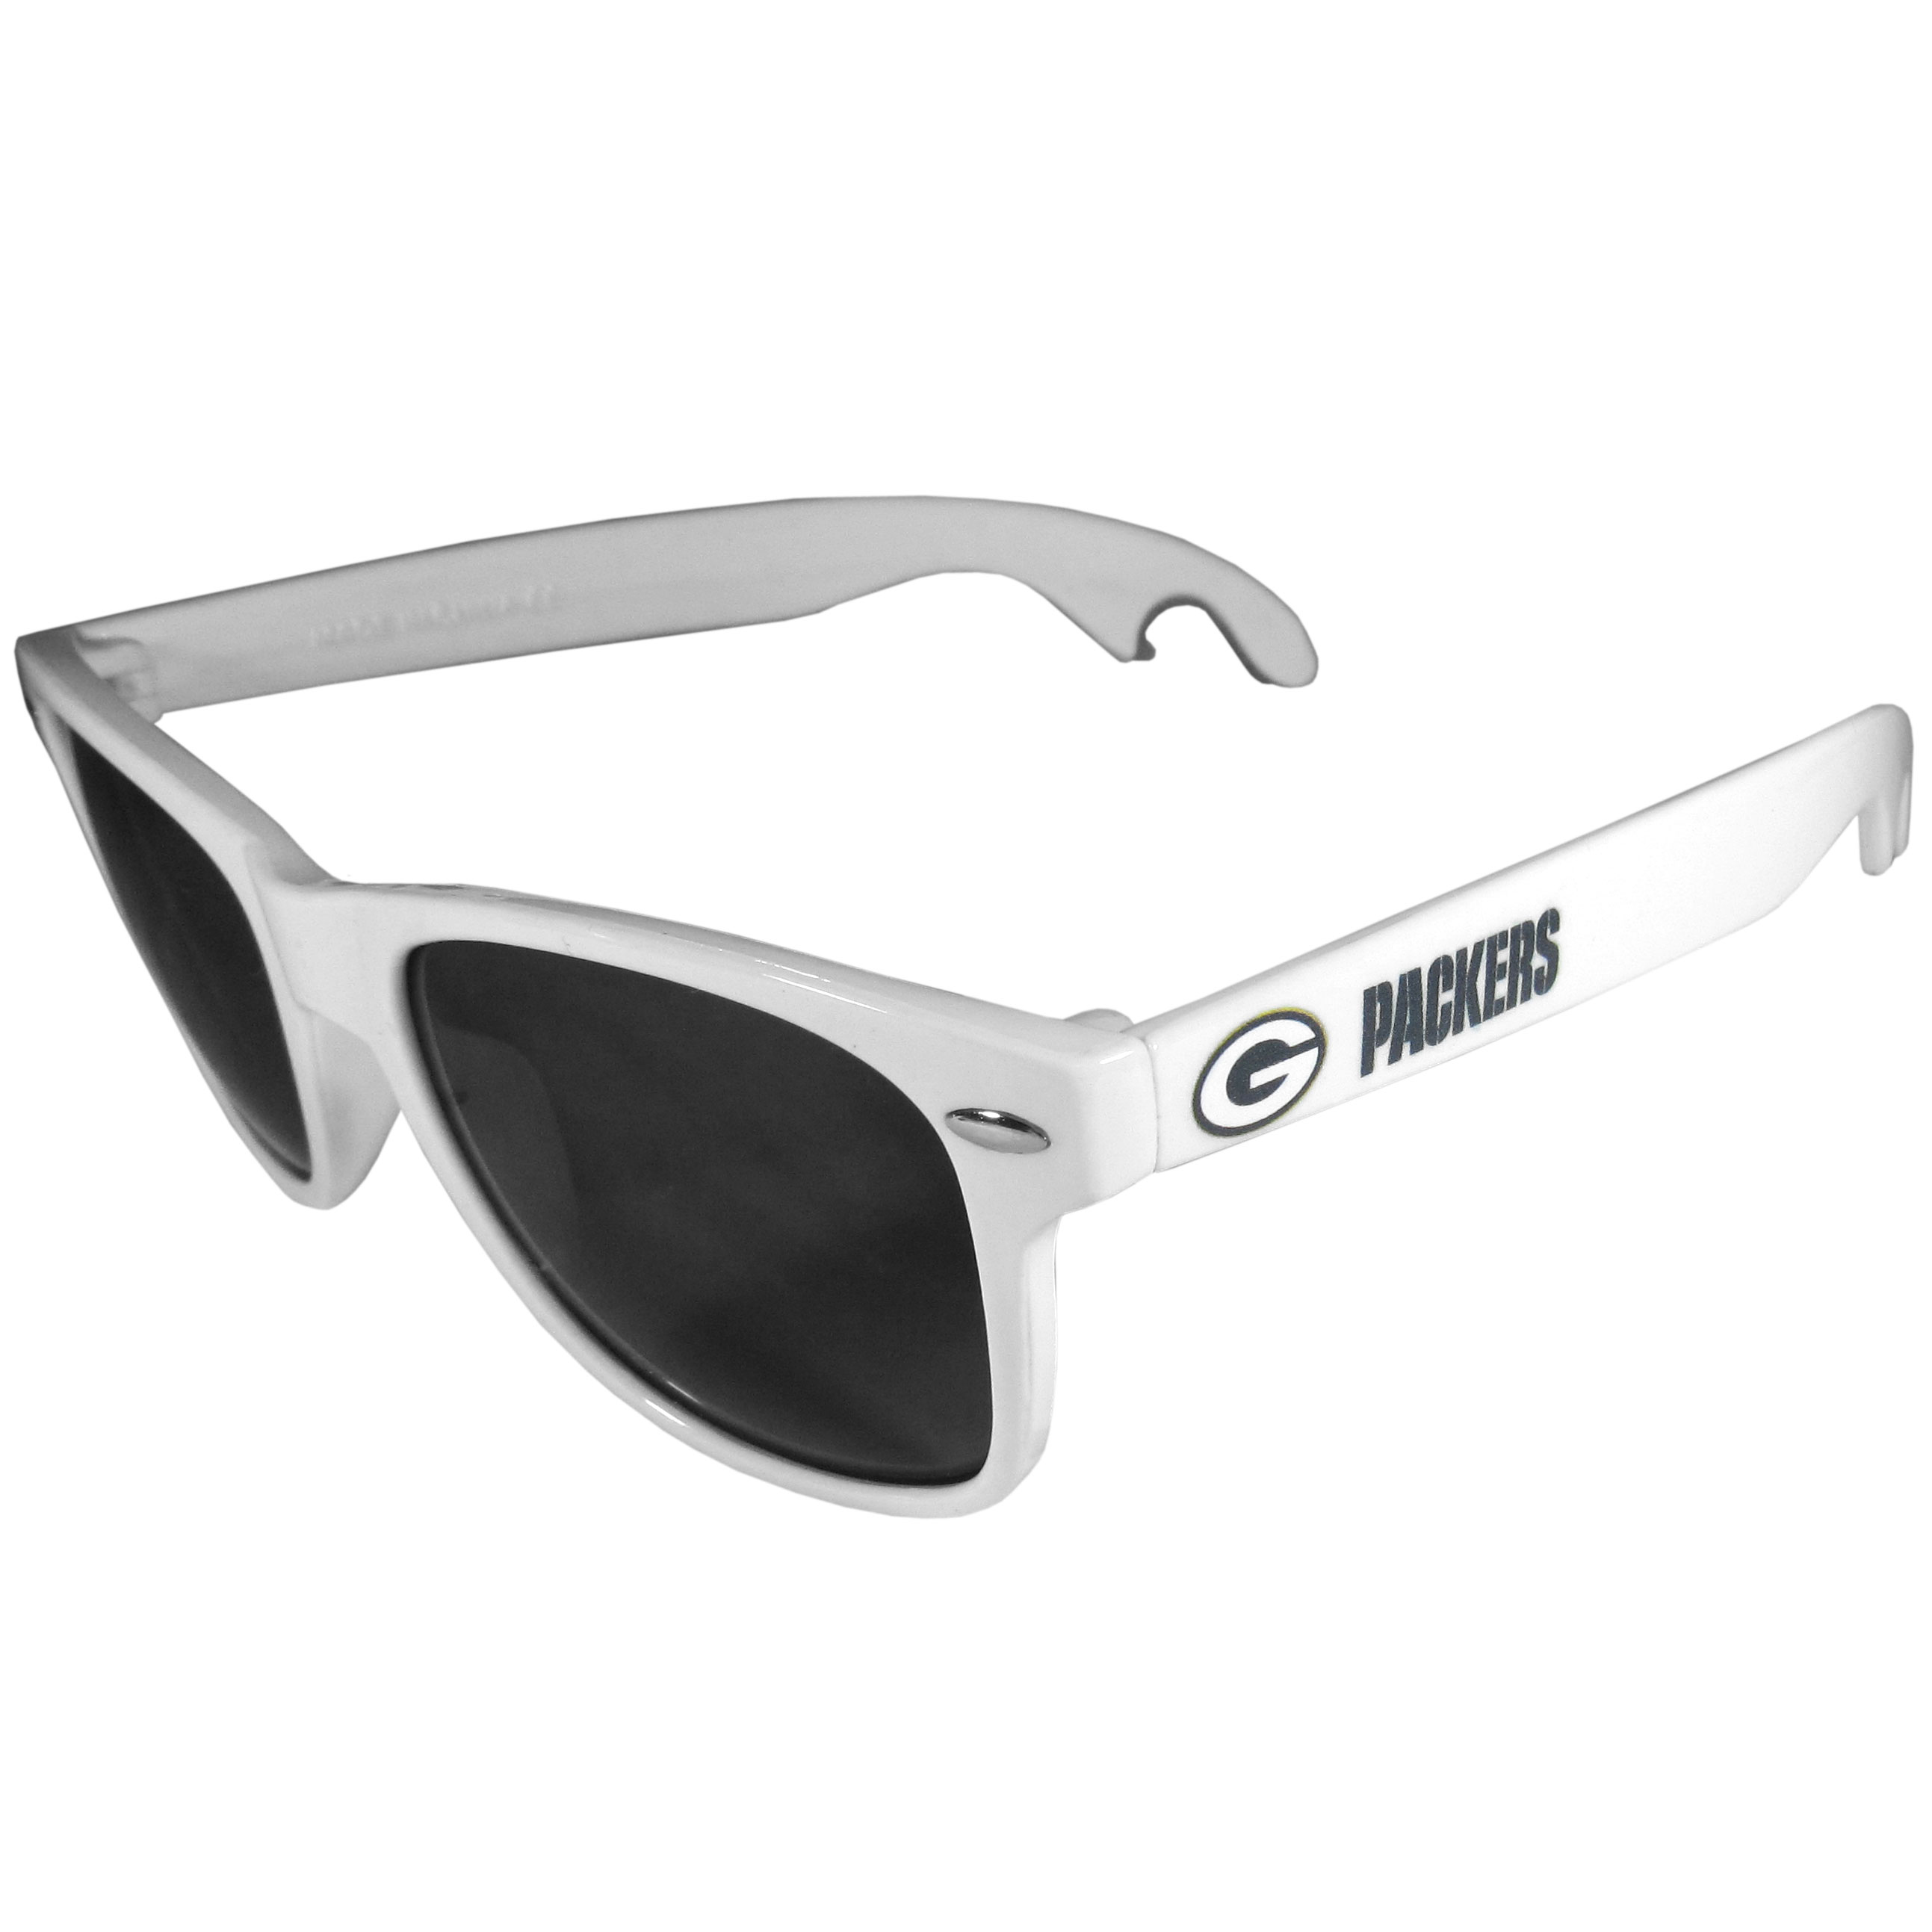 Green Bay Packers Beachfarer Bottle Opener Sunglasses, White - Seriously, these sunglasses open bottles! Keep the party going with these amazing Green Bay Packers bottle opener sunglasses. The stylish retro frames feature team designs on the arms and functional bottle openers on the end of the arms. Whether you are at the beach or having a backyard BBQ on game day, these shades will keep your eyes protected with 100% UVA/UVB protection and keep you hydrated with the handy bottle opener arms.